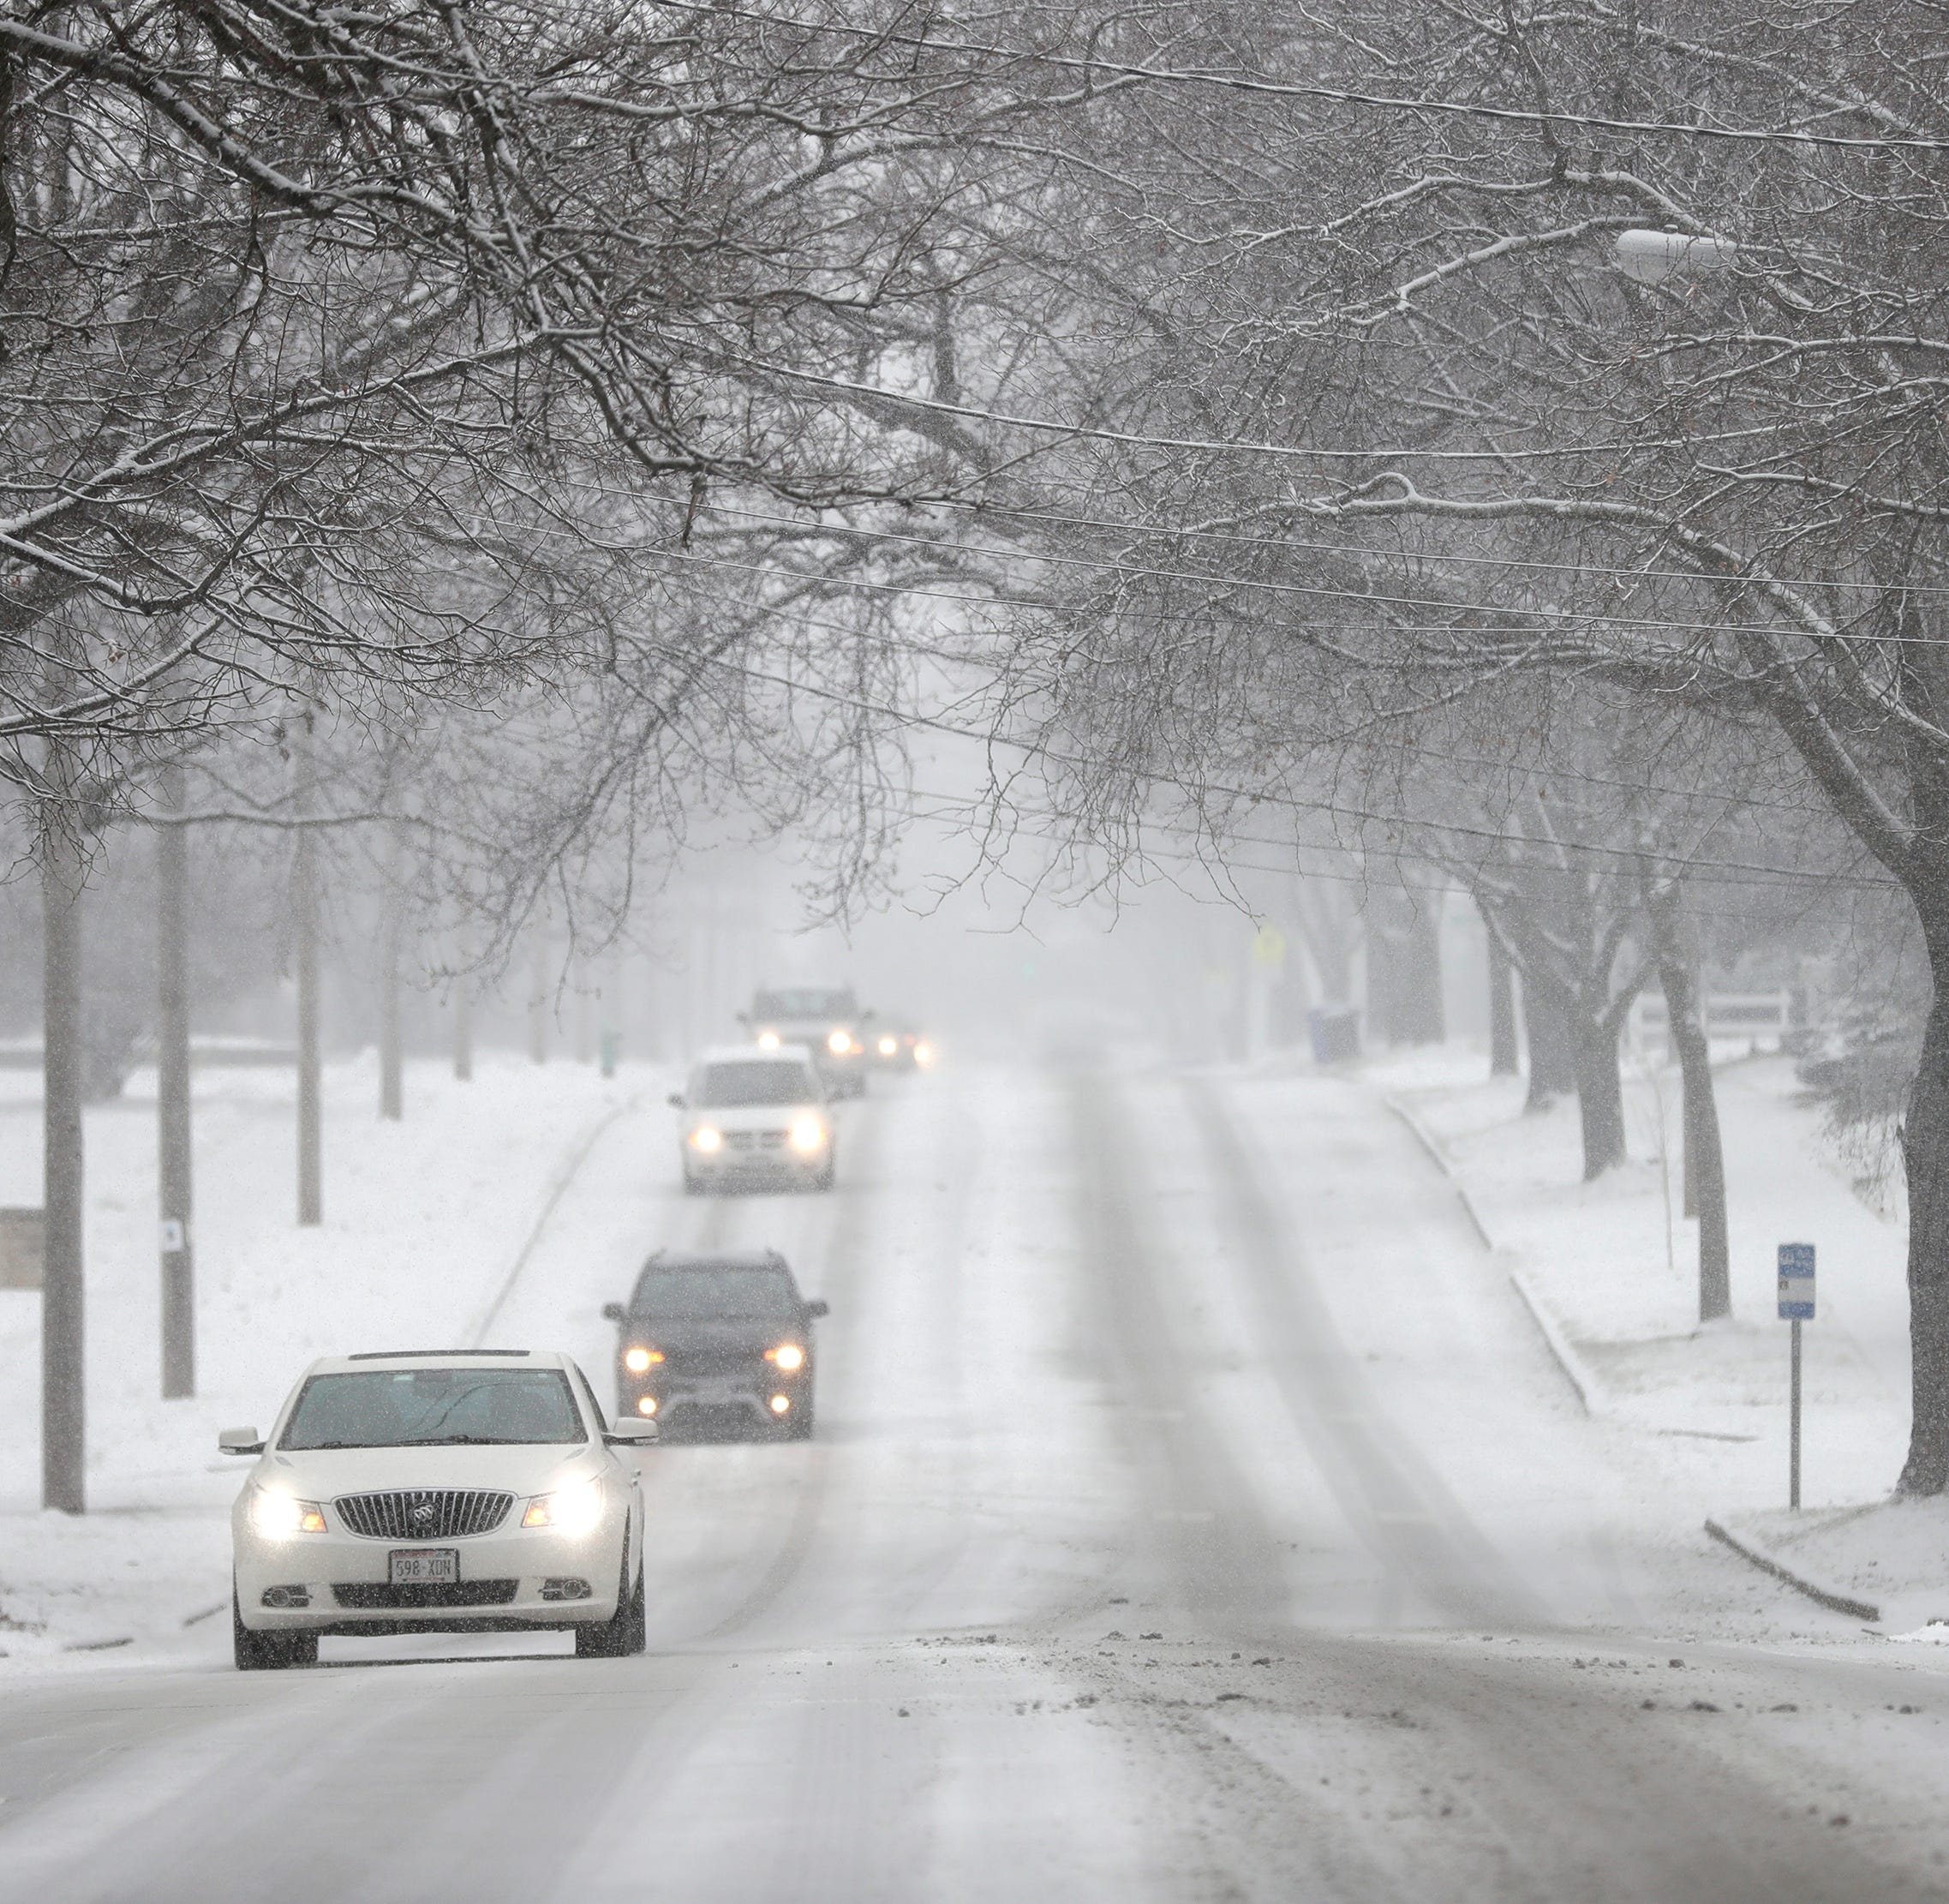 Snow emergency declared for Appleton through Friday morning